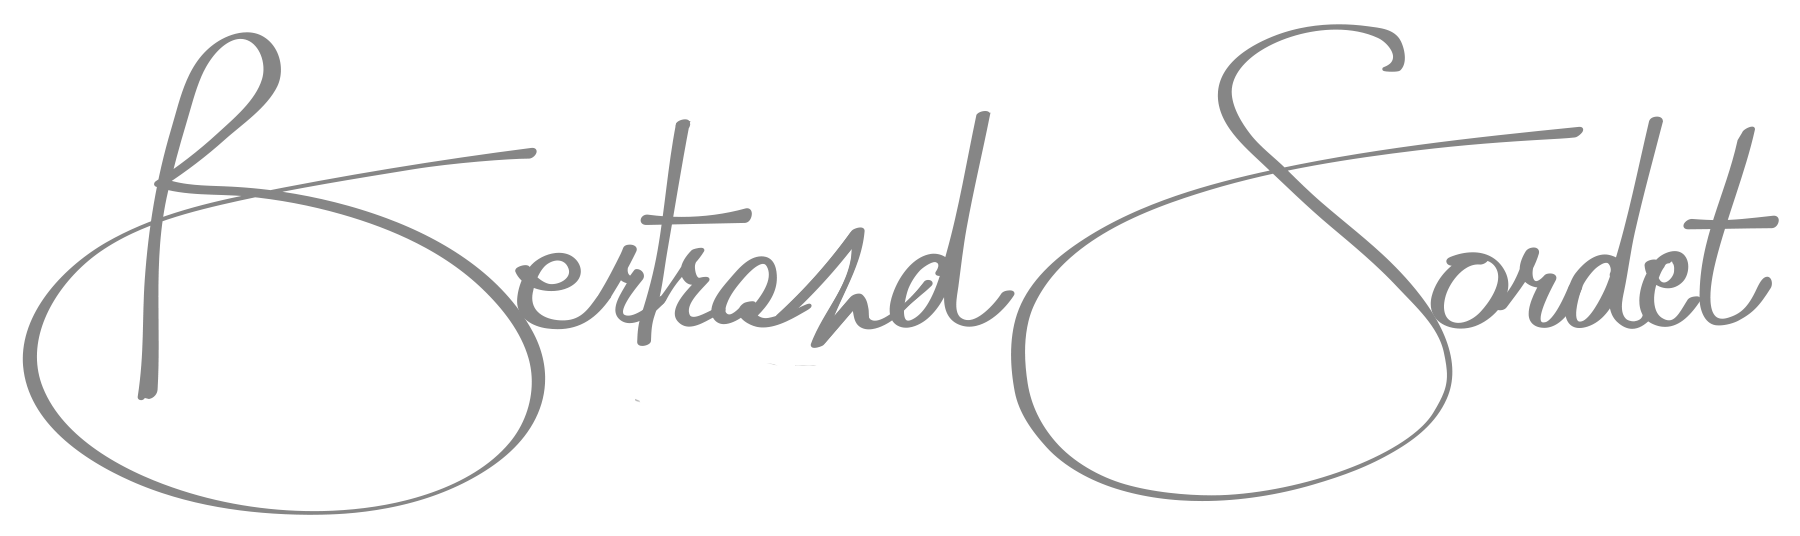 Water_logo_signature_1.5_Gris_final.png